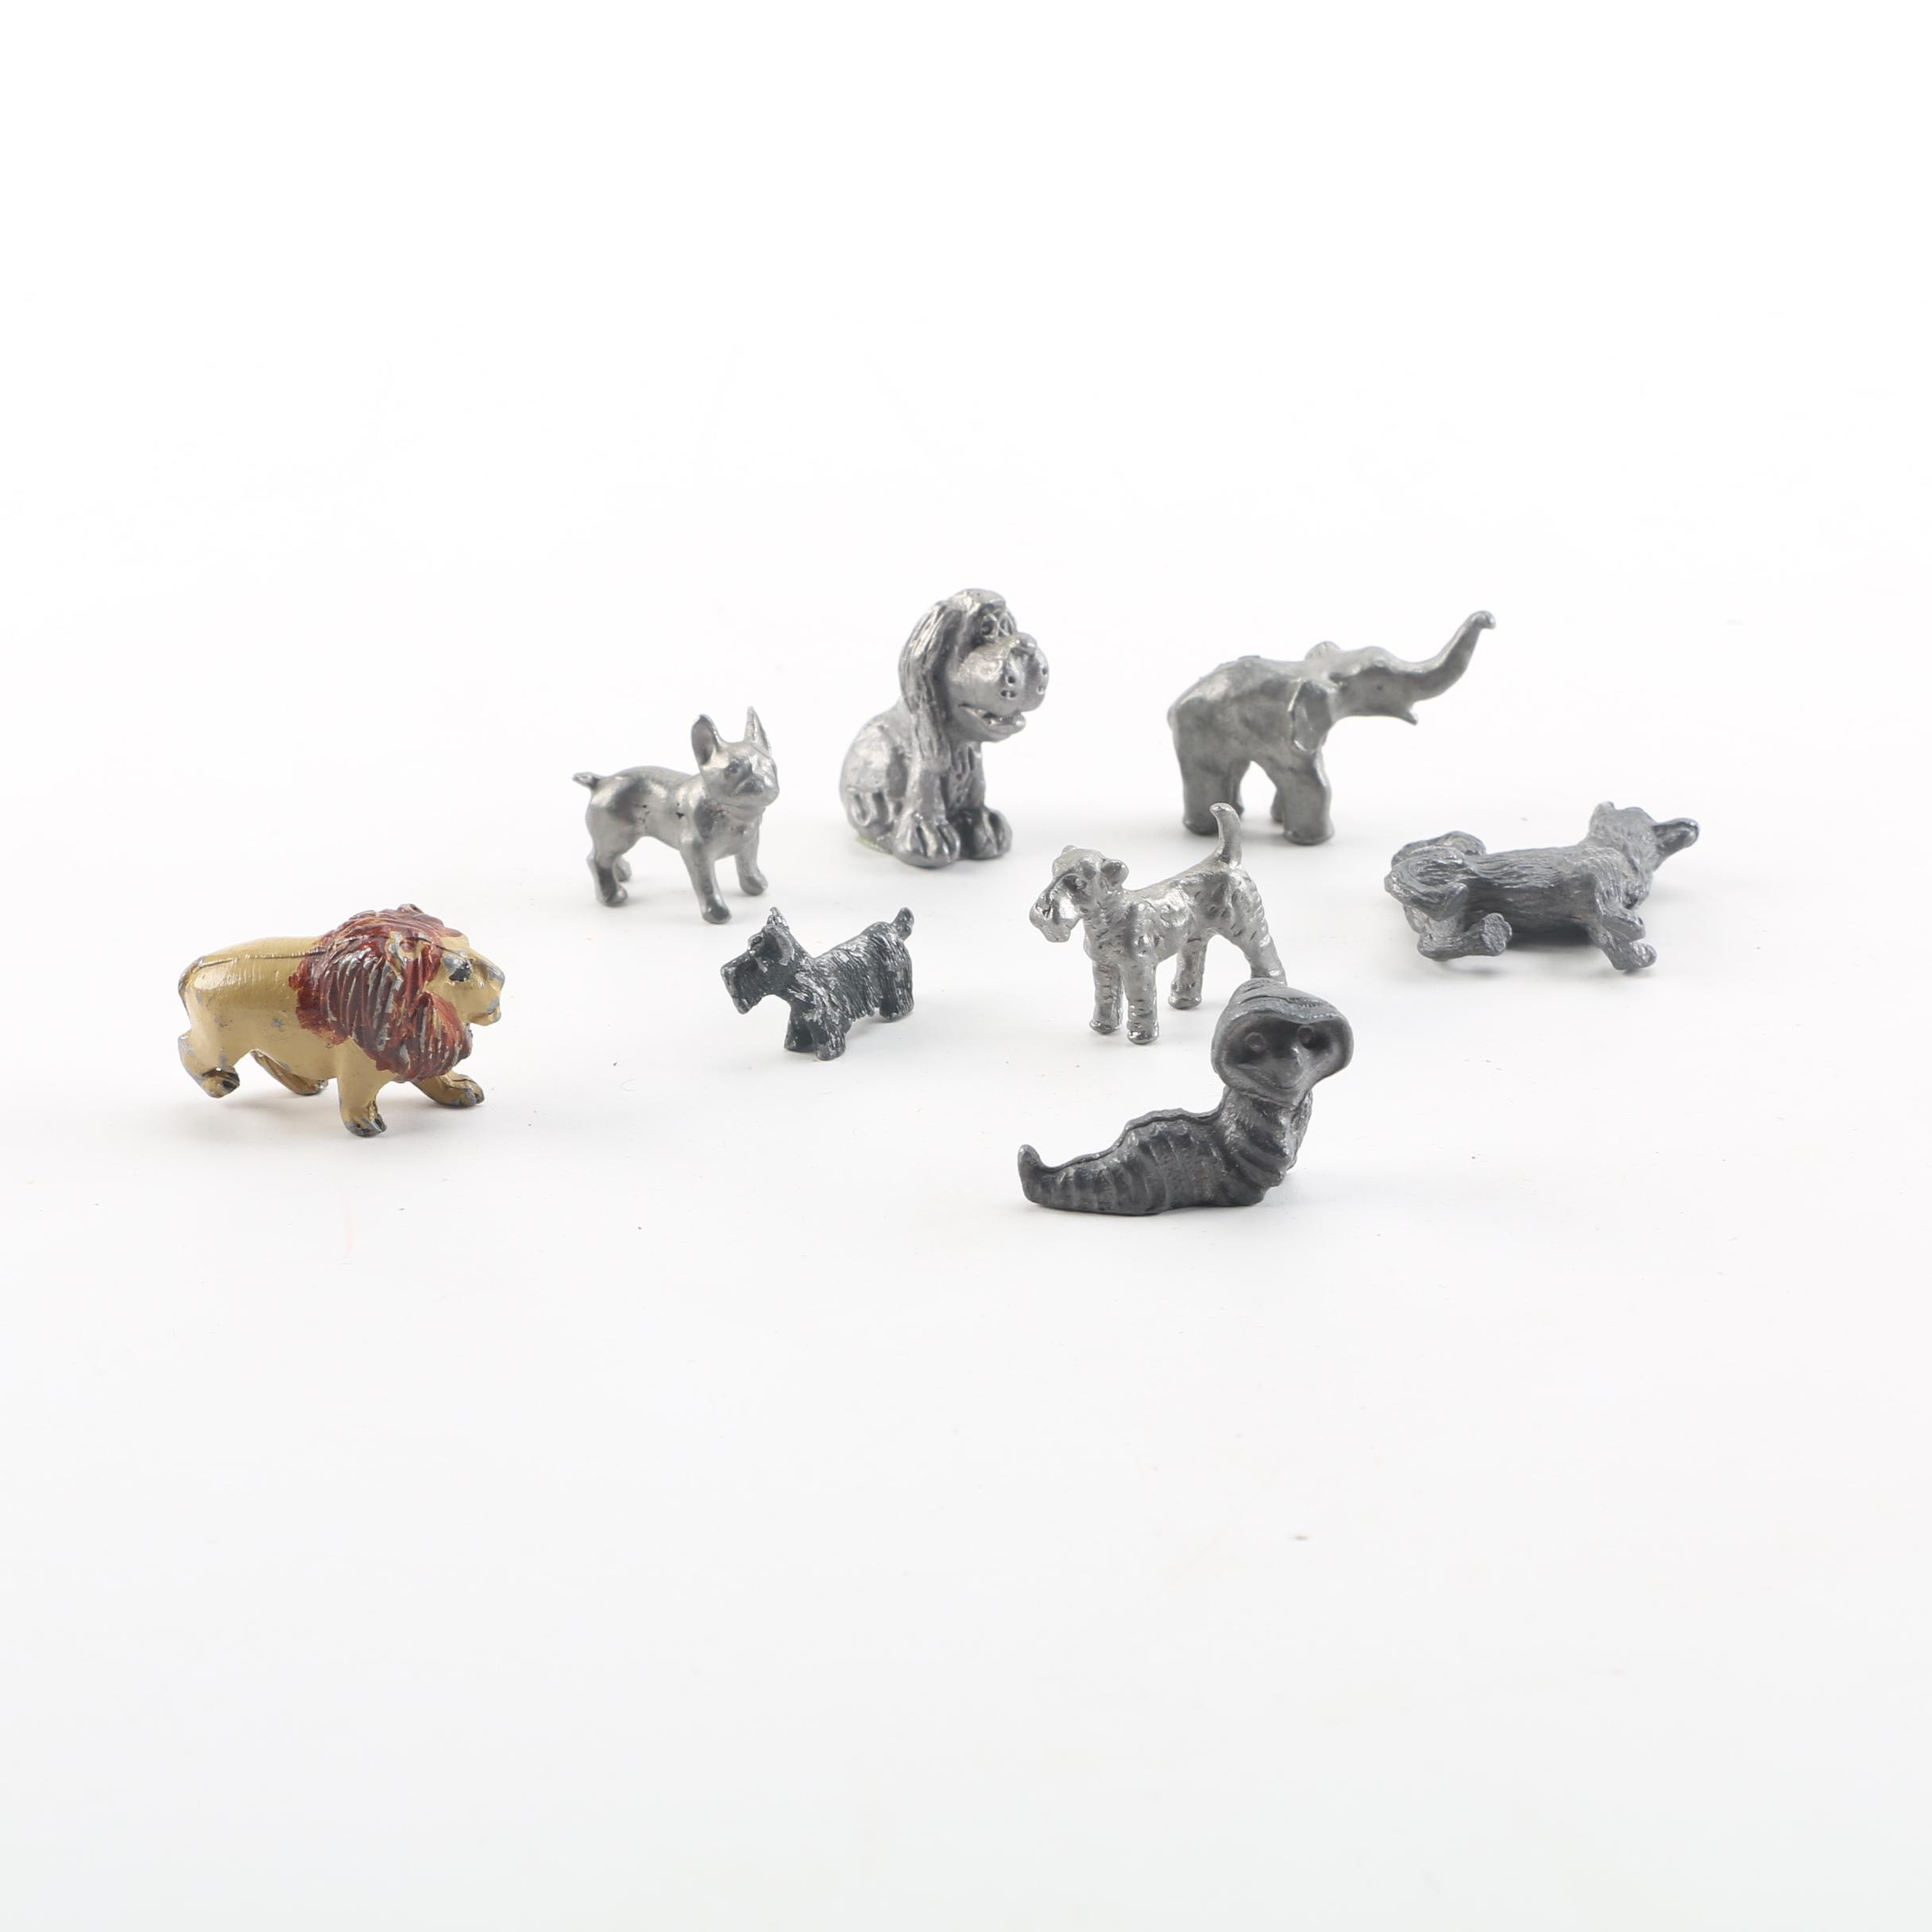 Eight Metal and Resin Animal Figurines